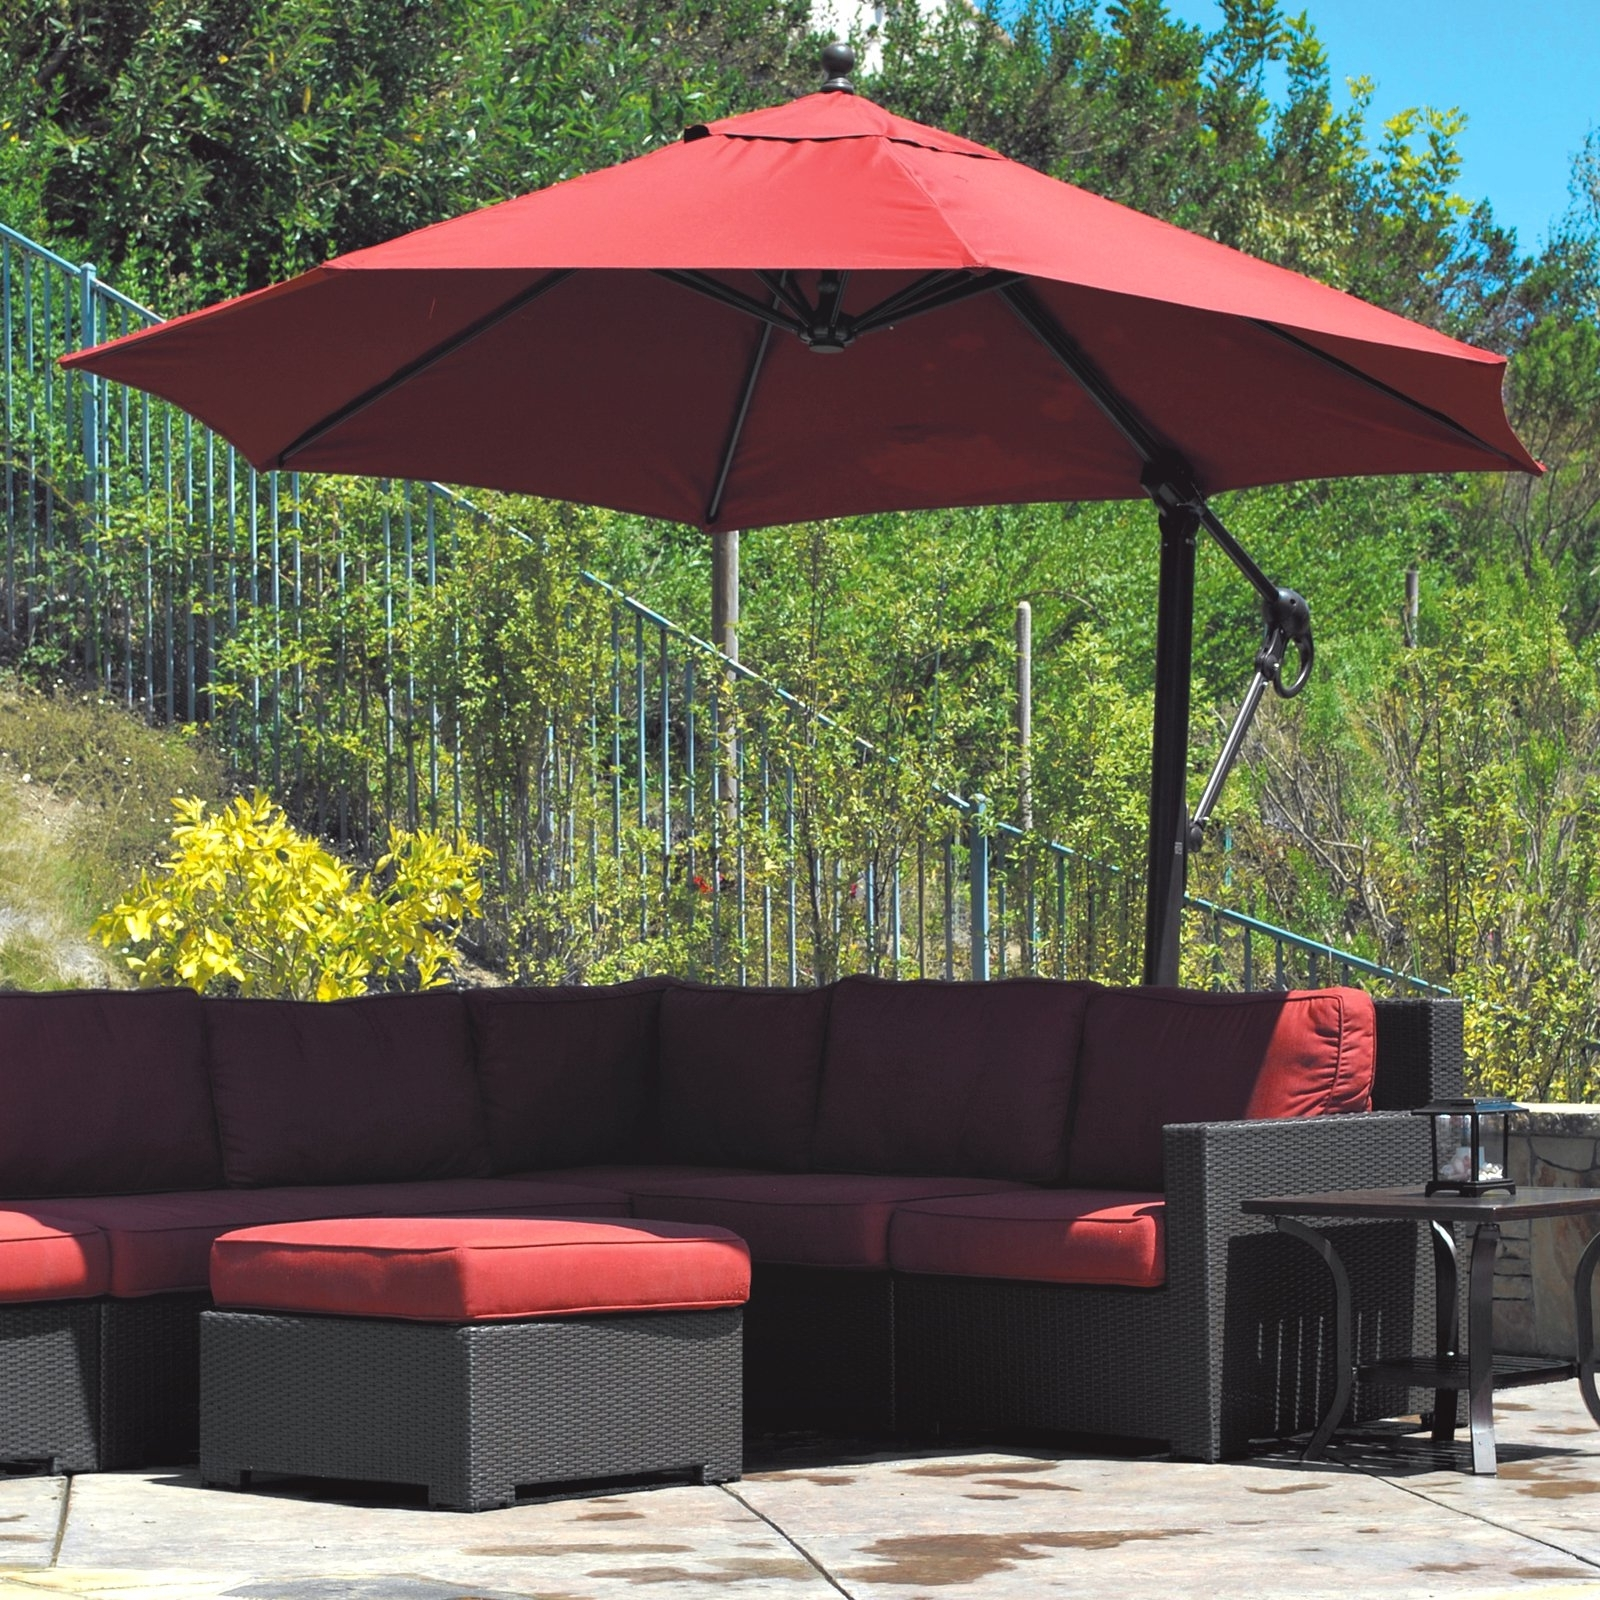 Most Recent Galtech Sunbrella Easy Tilt 11 Ft. Offset Umbrella With Wheeled Base With Regard To 11 Ft (View 16 of 20)